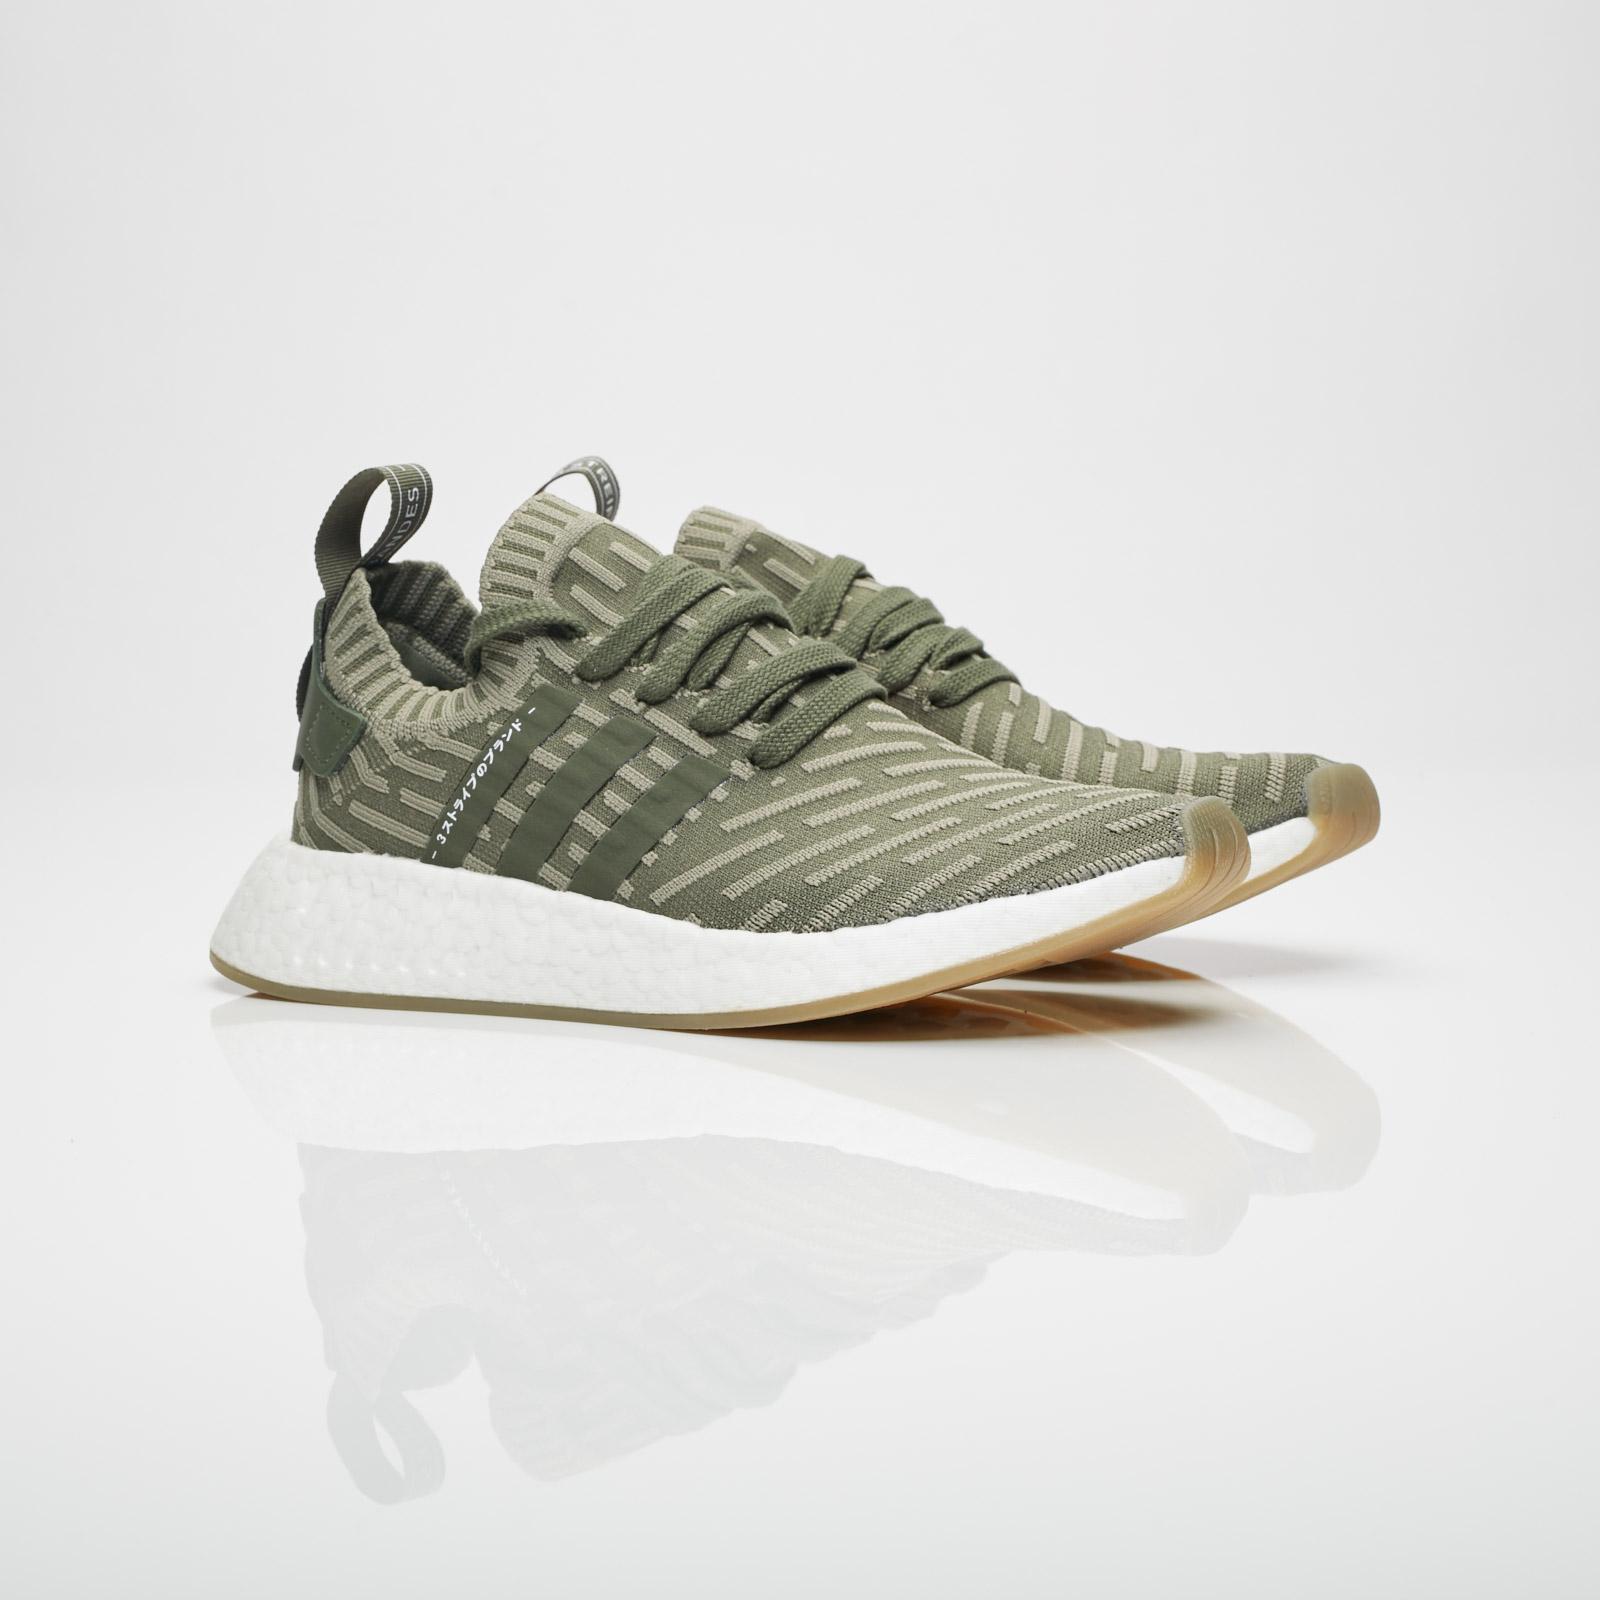 buy popular 7739c bebcf adidas NMD R2 PK W - By9953 - Sneakersnstuff | sneakers ...